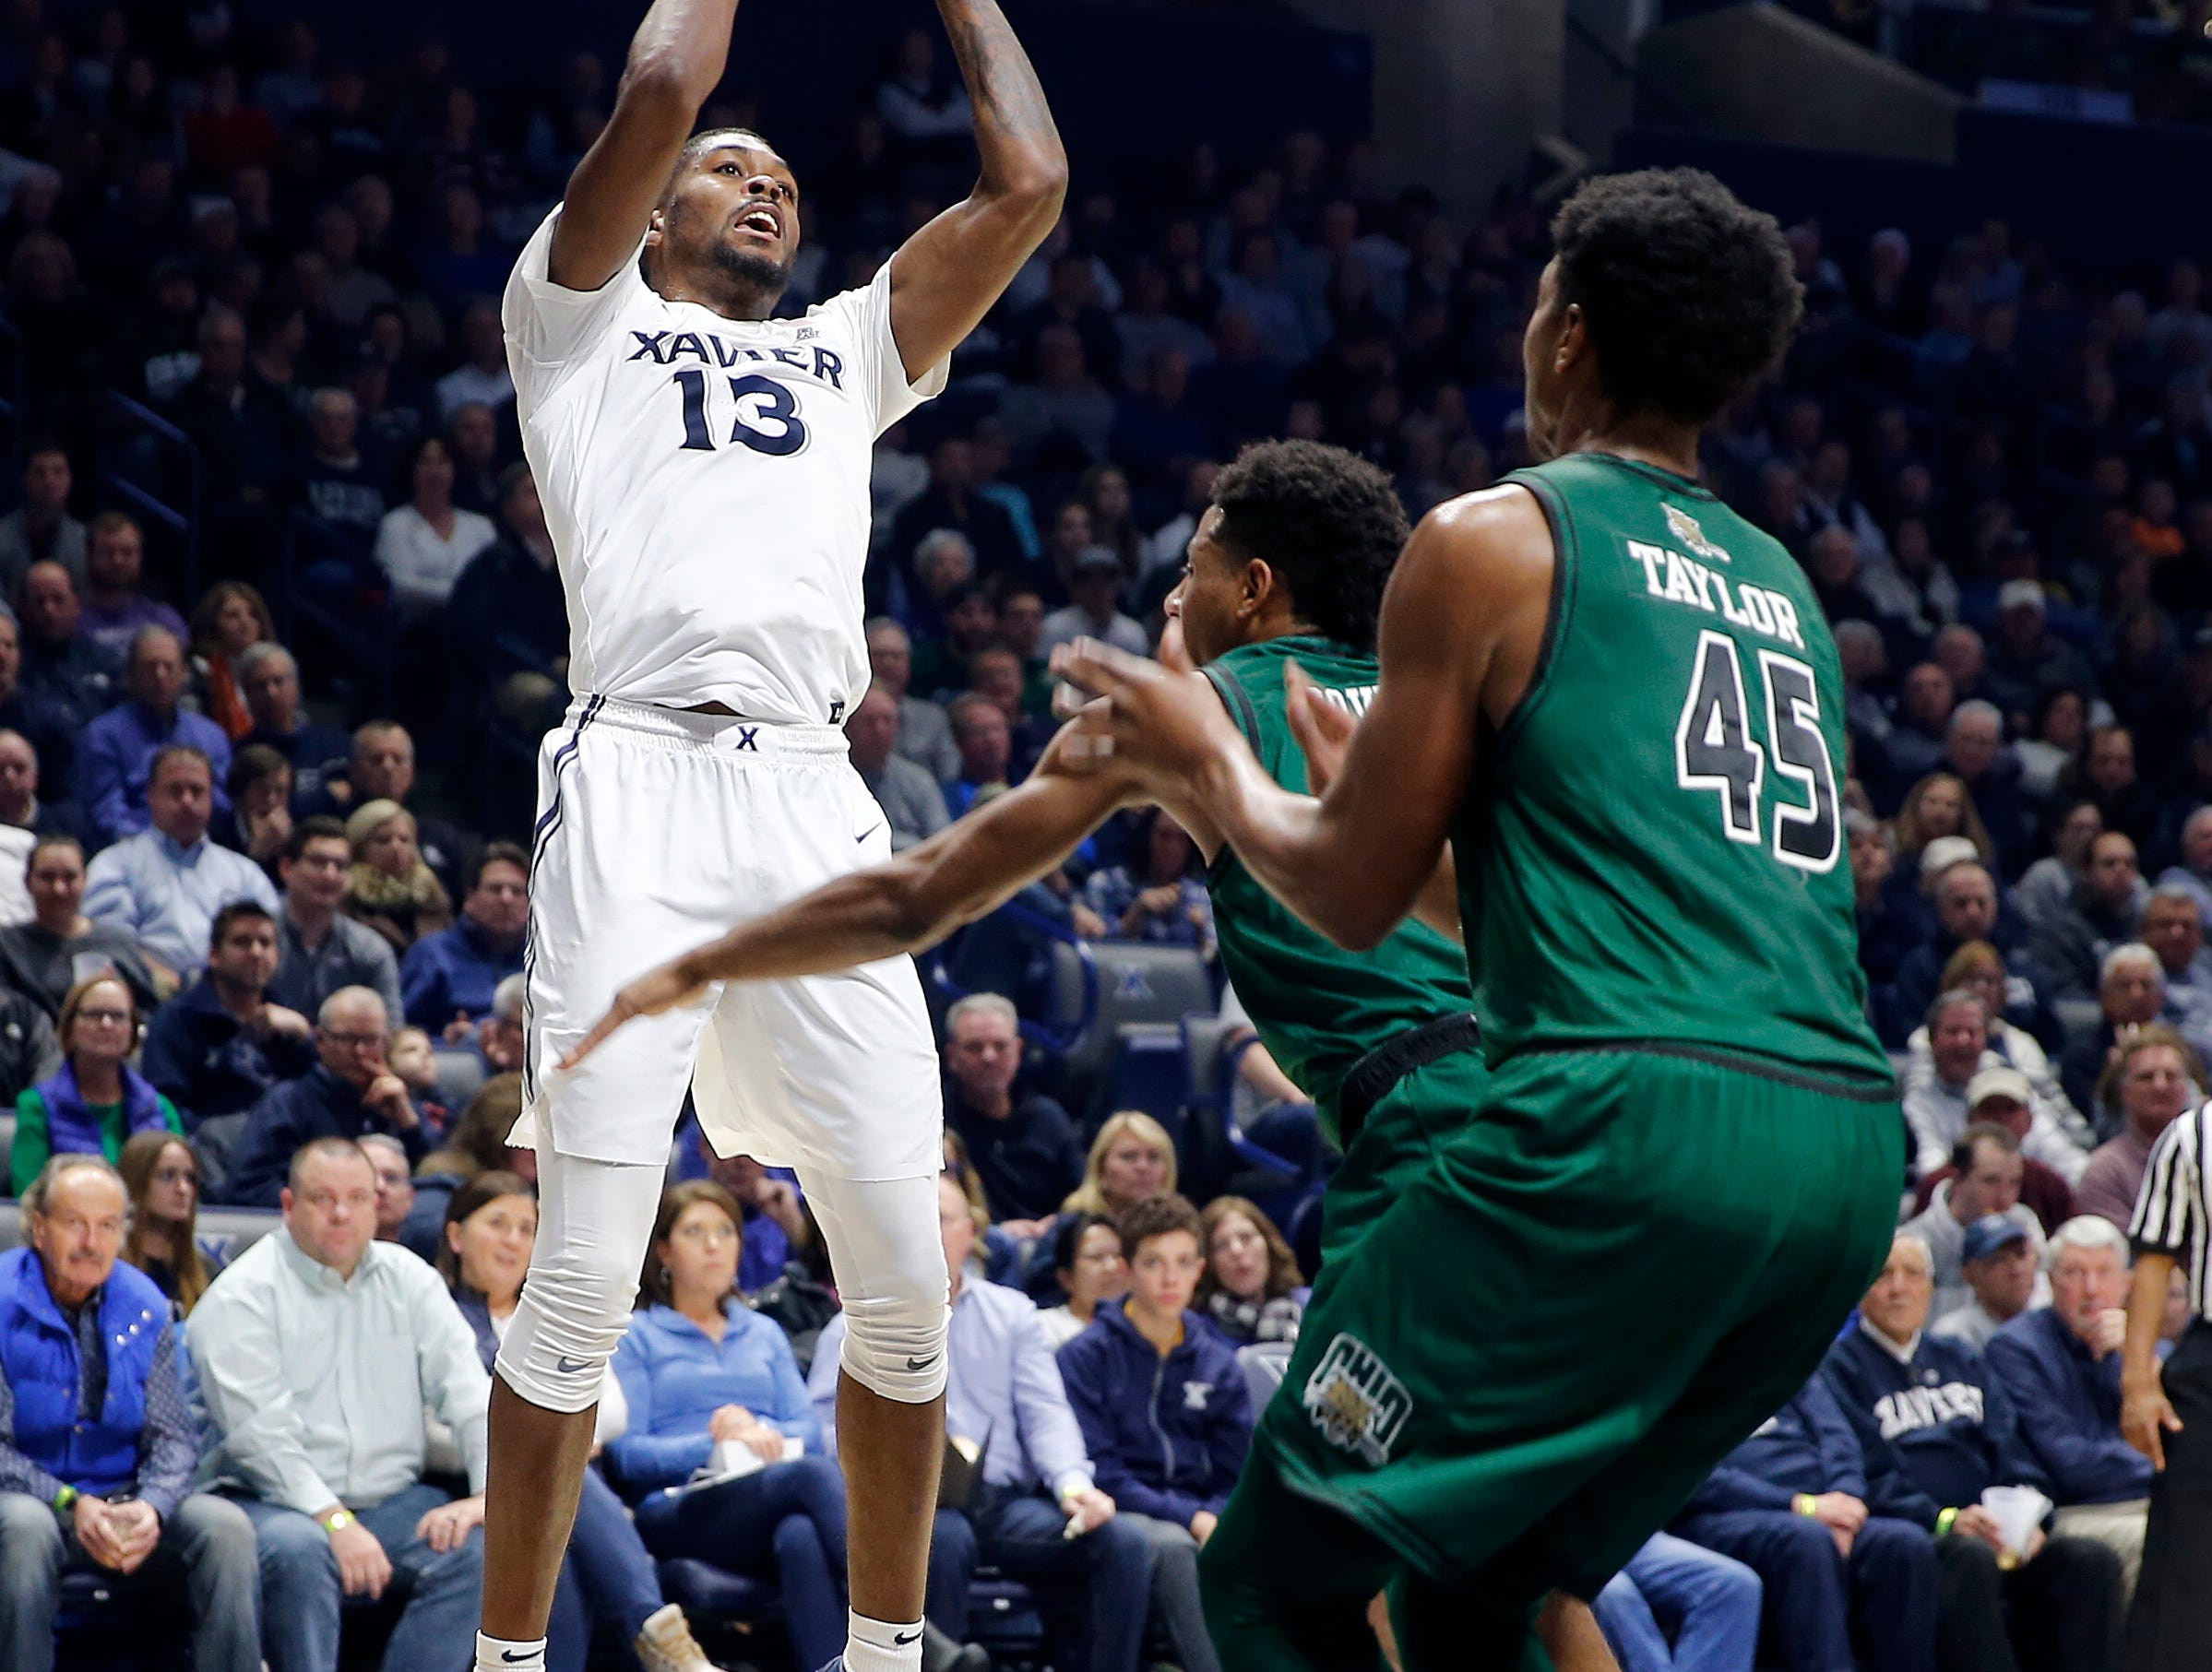 Xavier Musketeers forward Naji Marshall (13) shoots over the defense of Ohio University in the first half at Cintas  Center Wednesday December 5, 2018.